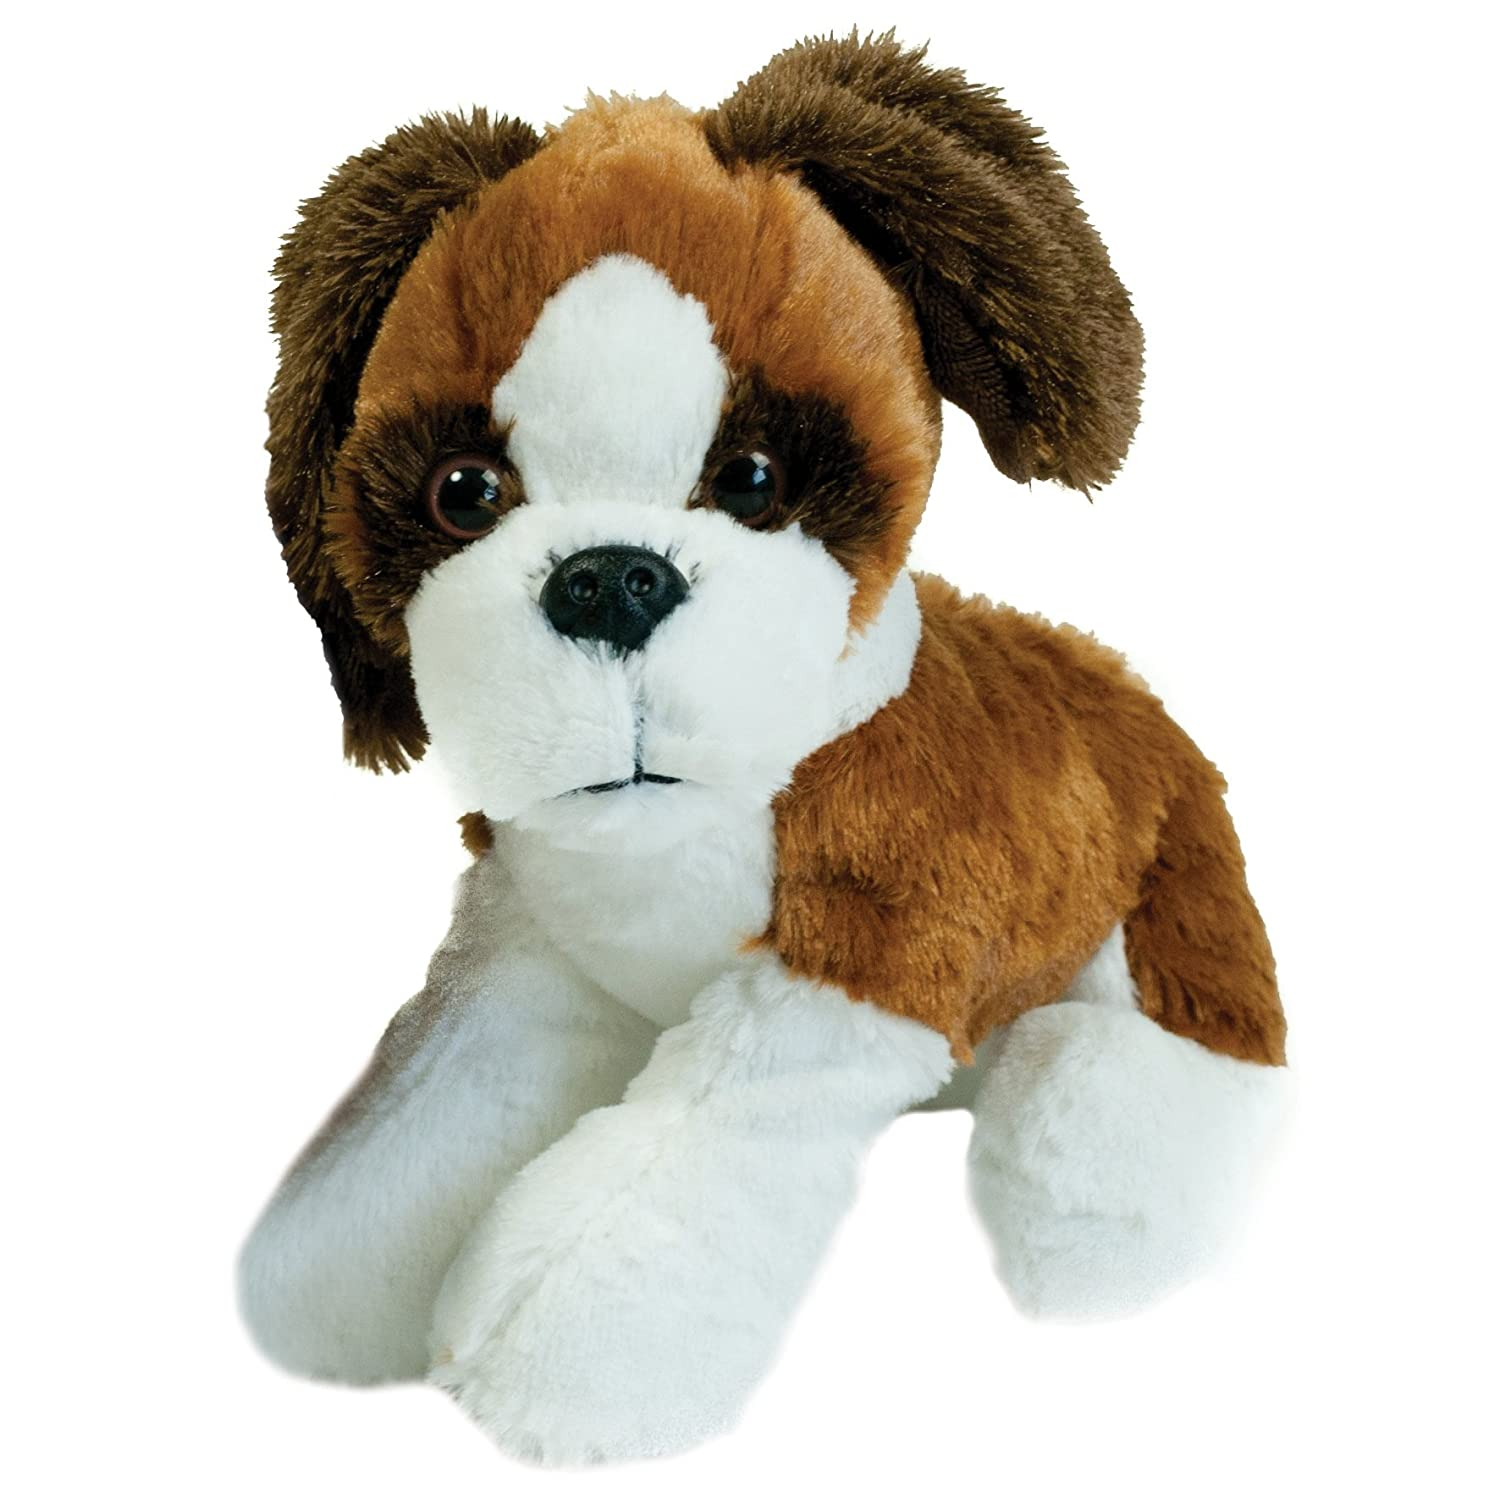 Mumbles Sandy The Dog Plush Soft Toy S Patch the Puppy Dog